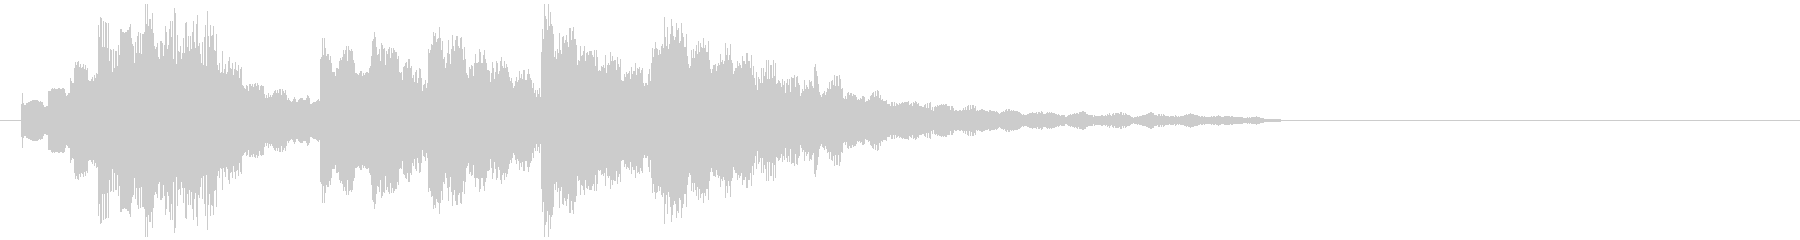 Pretty and cheerful music box style jingle's unreproduced waveform